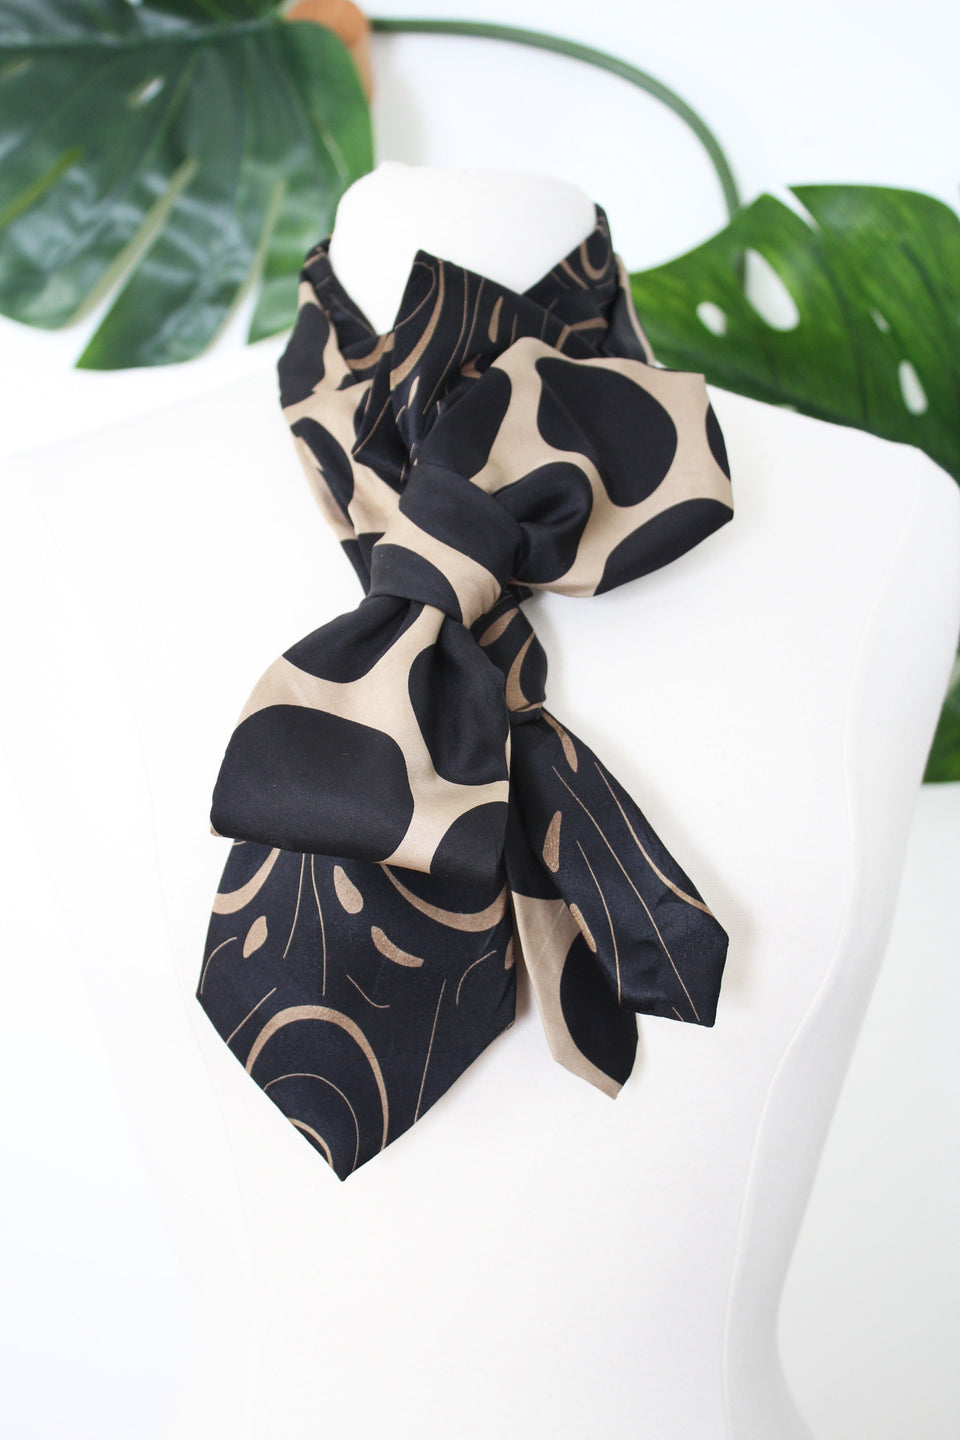 handmade Birdie ruffle snap on scarf refashioned from vintage taupe and black silk neckties styled